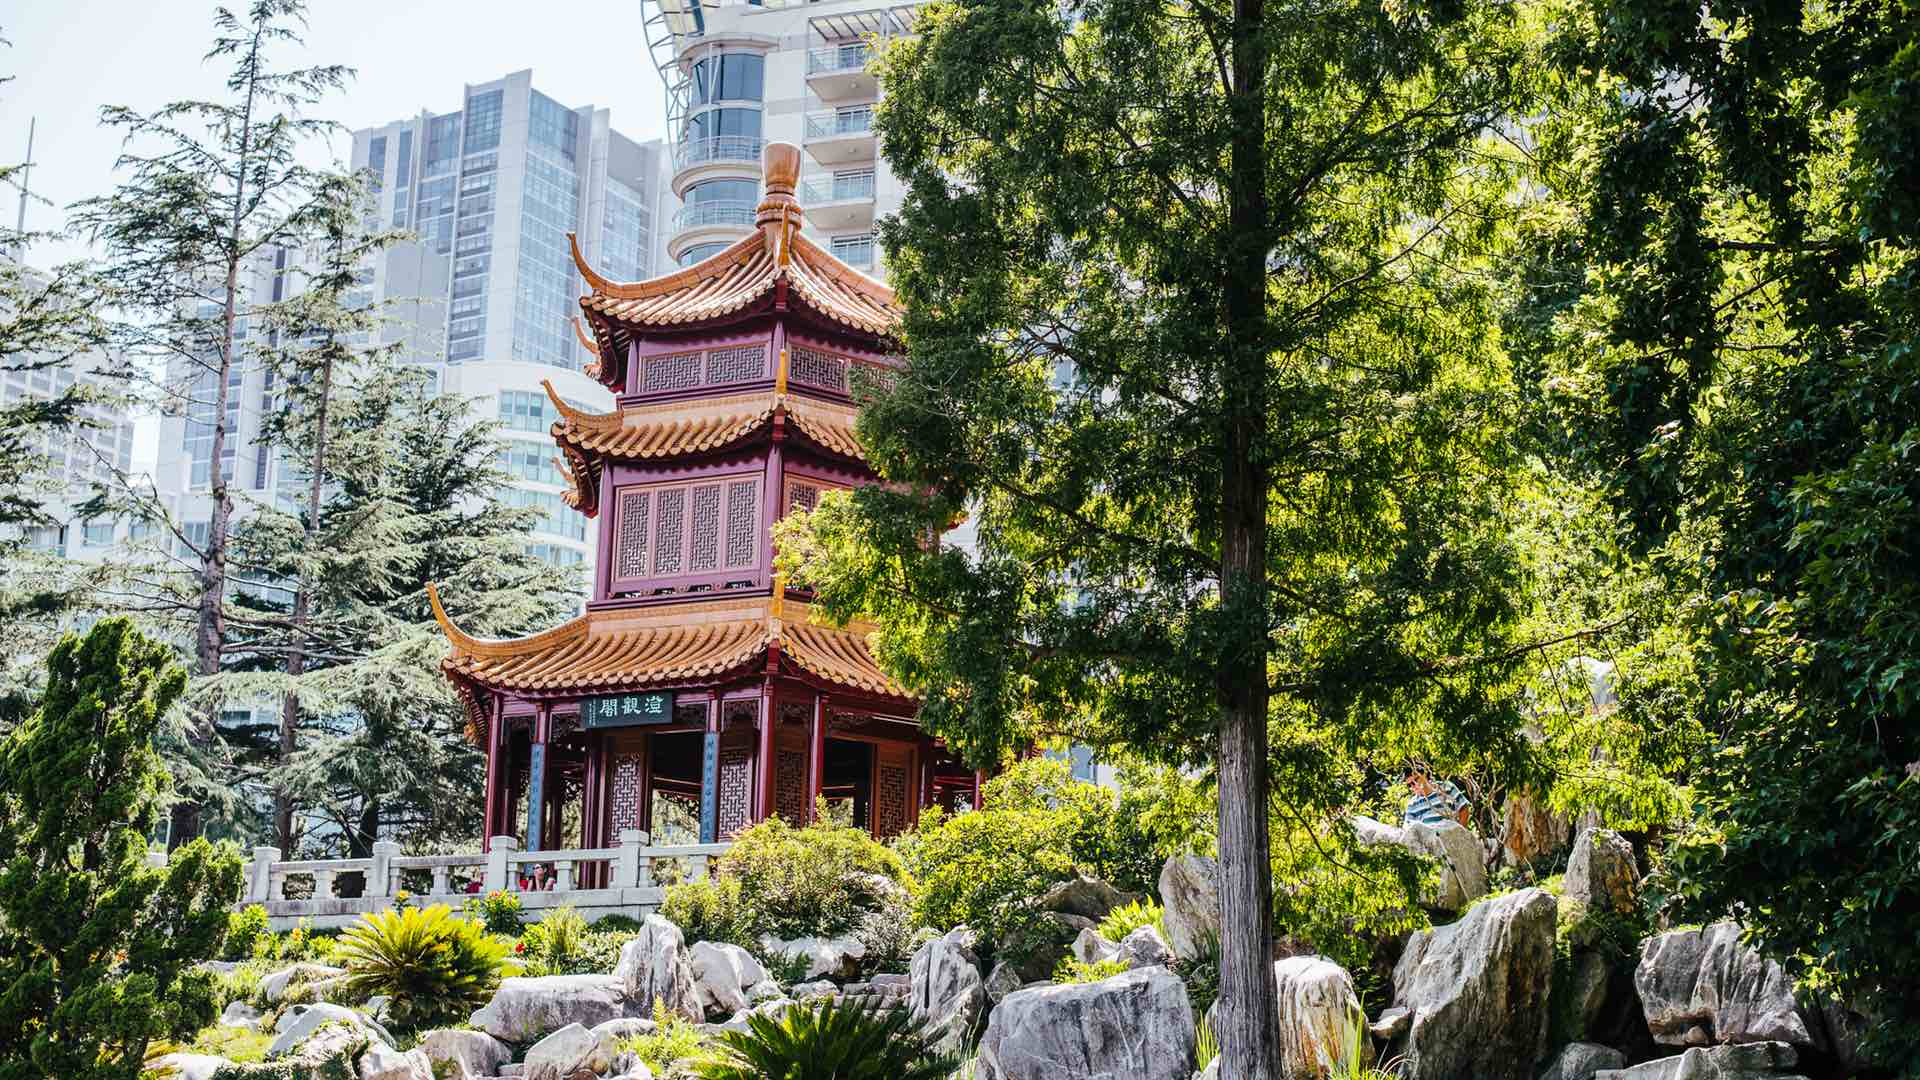 The Teahouse in Sydney's Tranquil Chinese Garden of Friendship Has Been Taken Over by Lotus